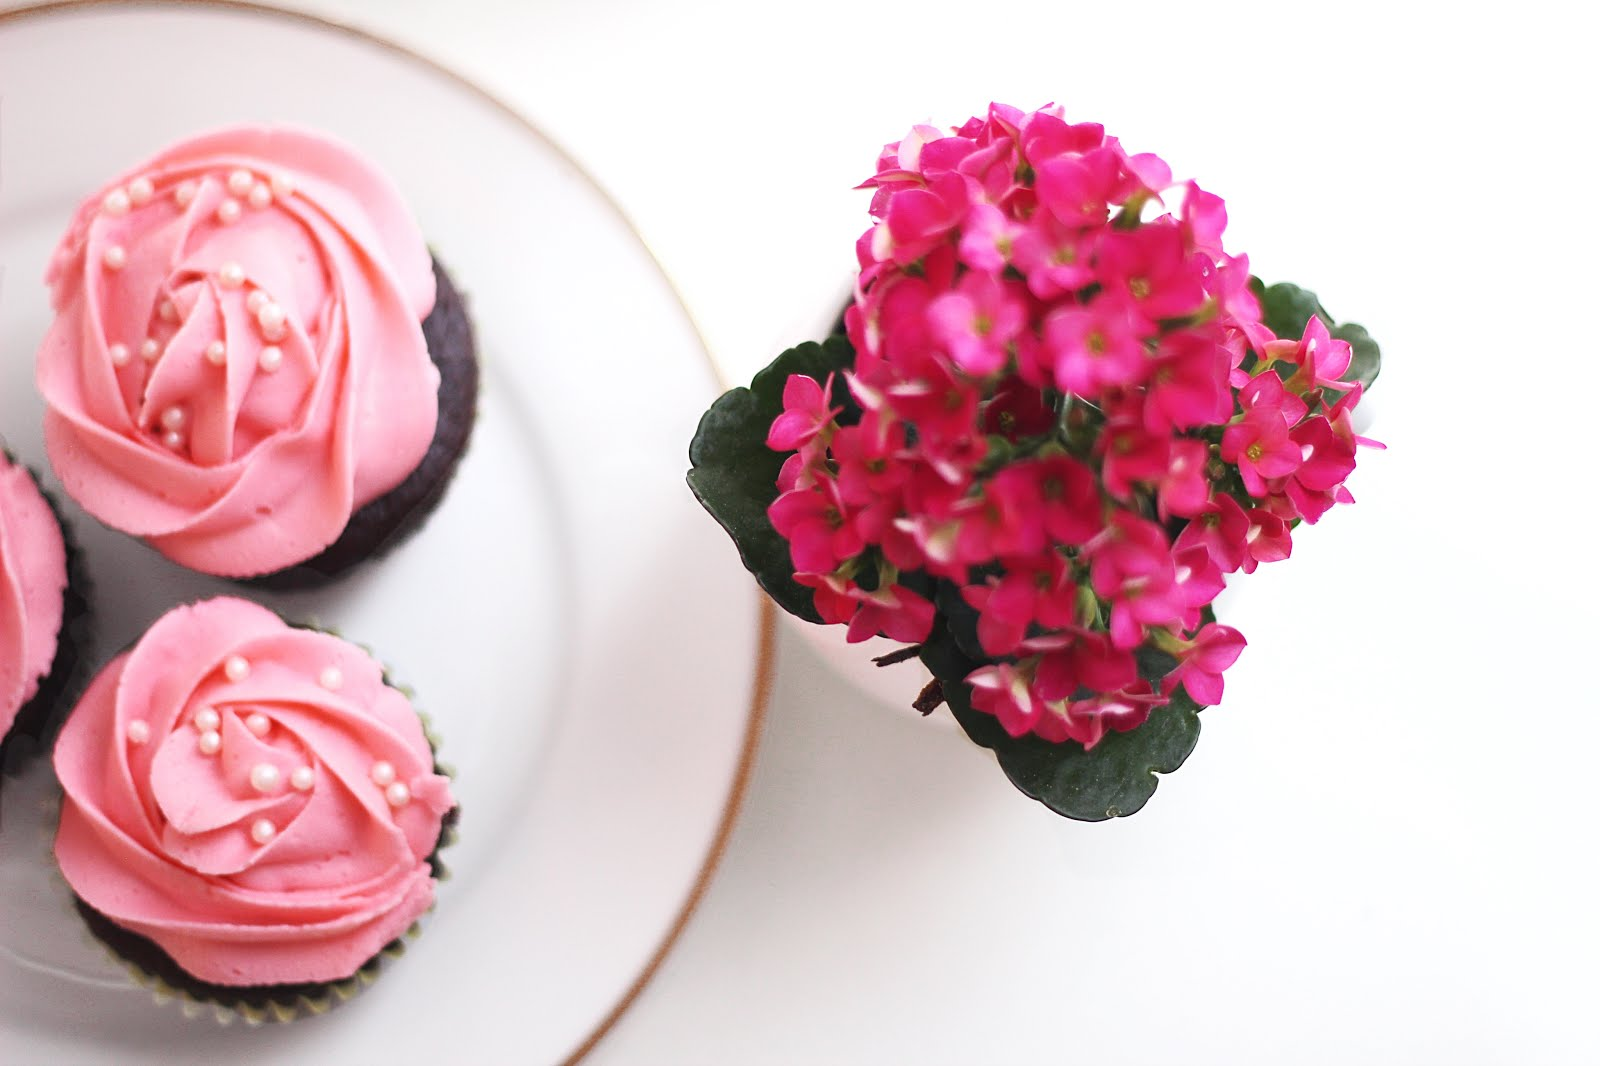 chocolate cupcakes with pink icing and pearls